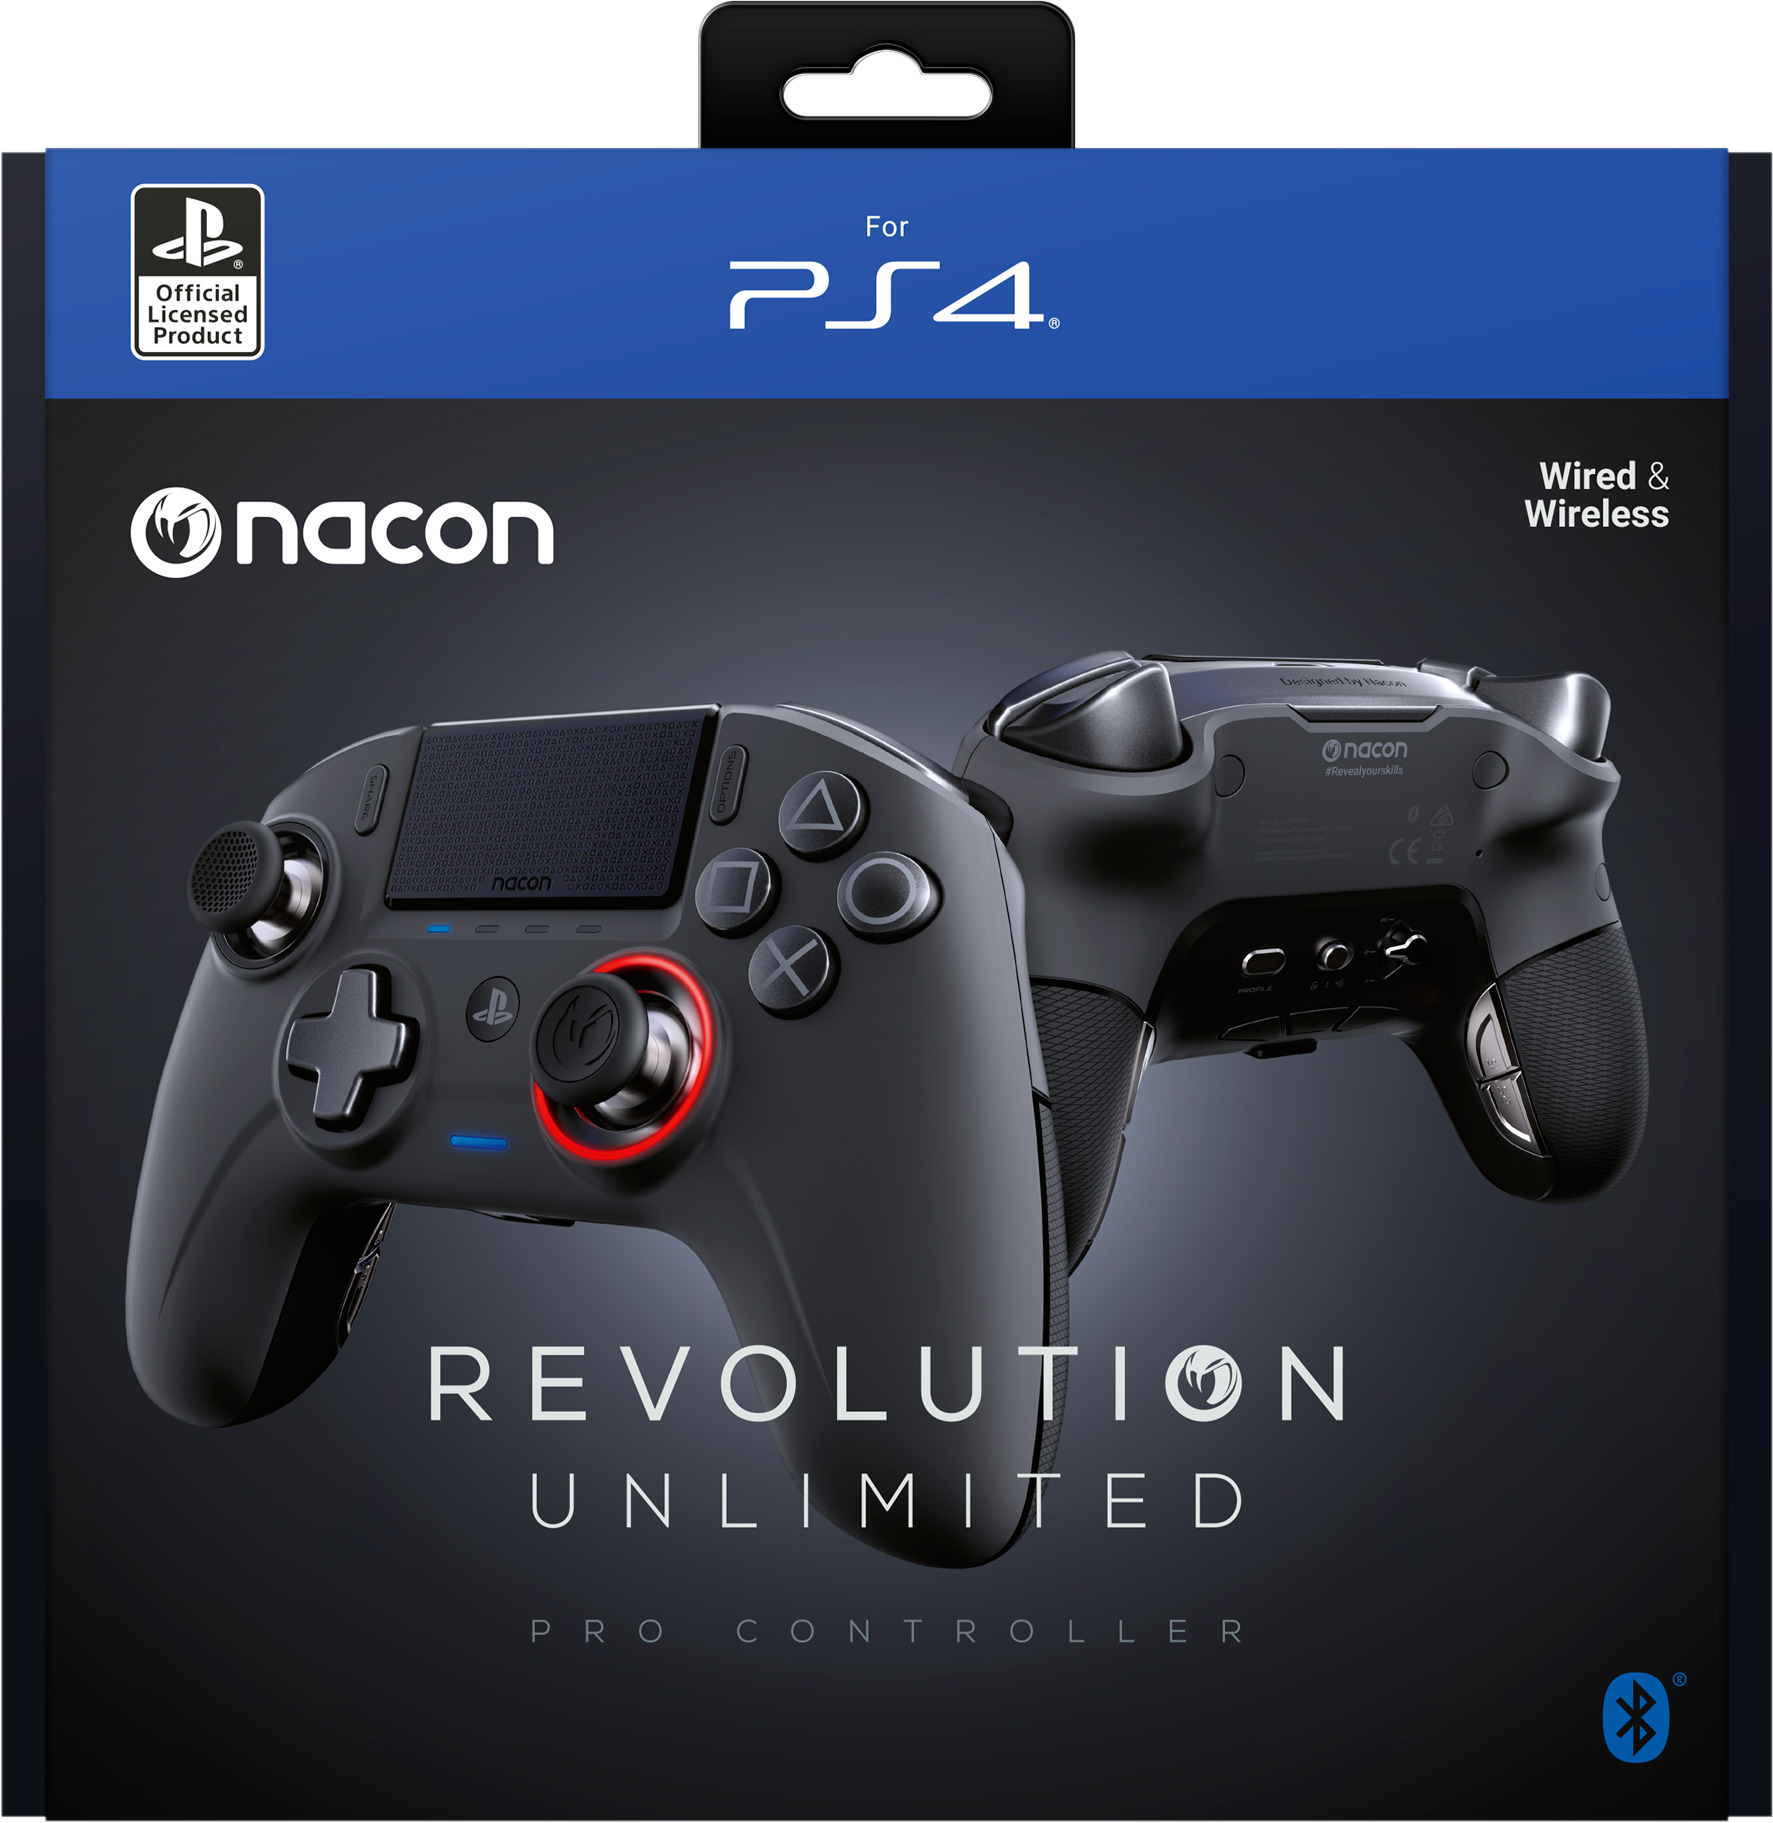 Revolution Pro Controller Unlimited (2019)